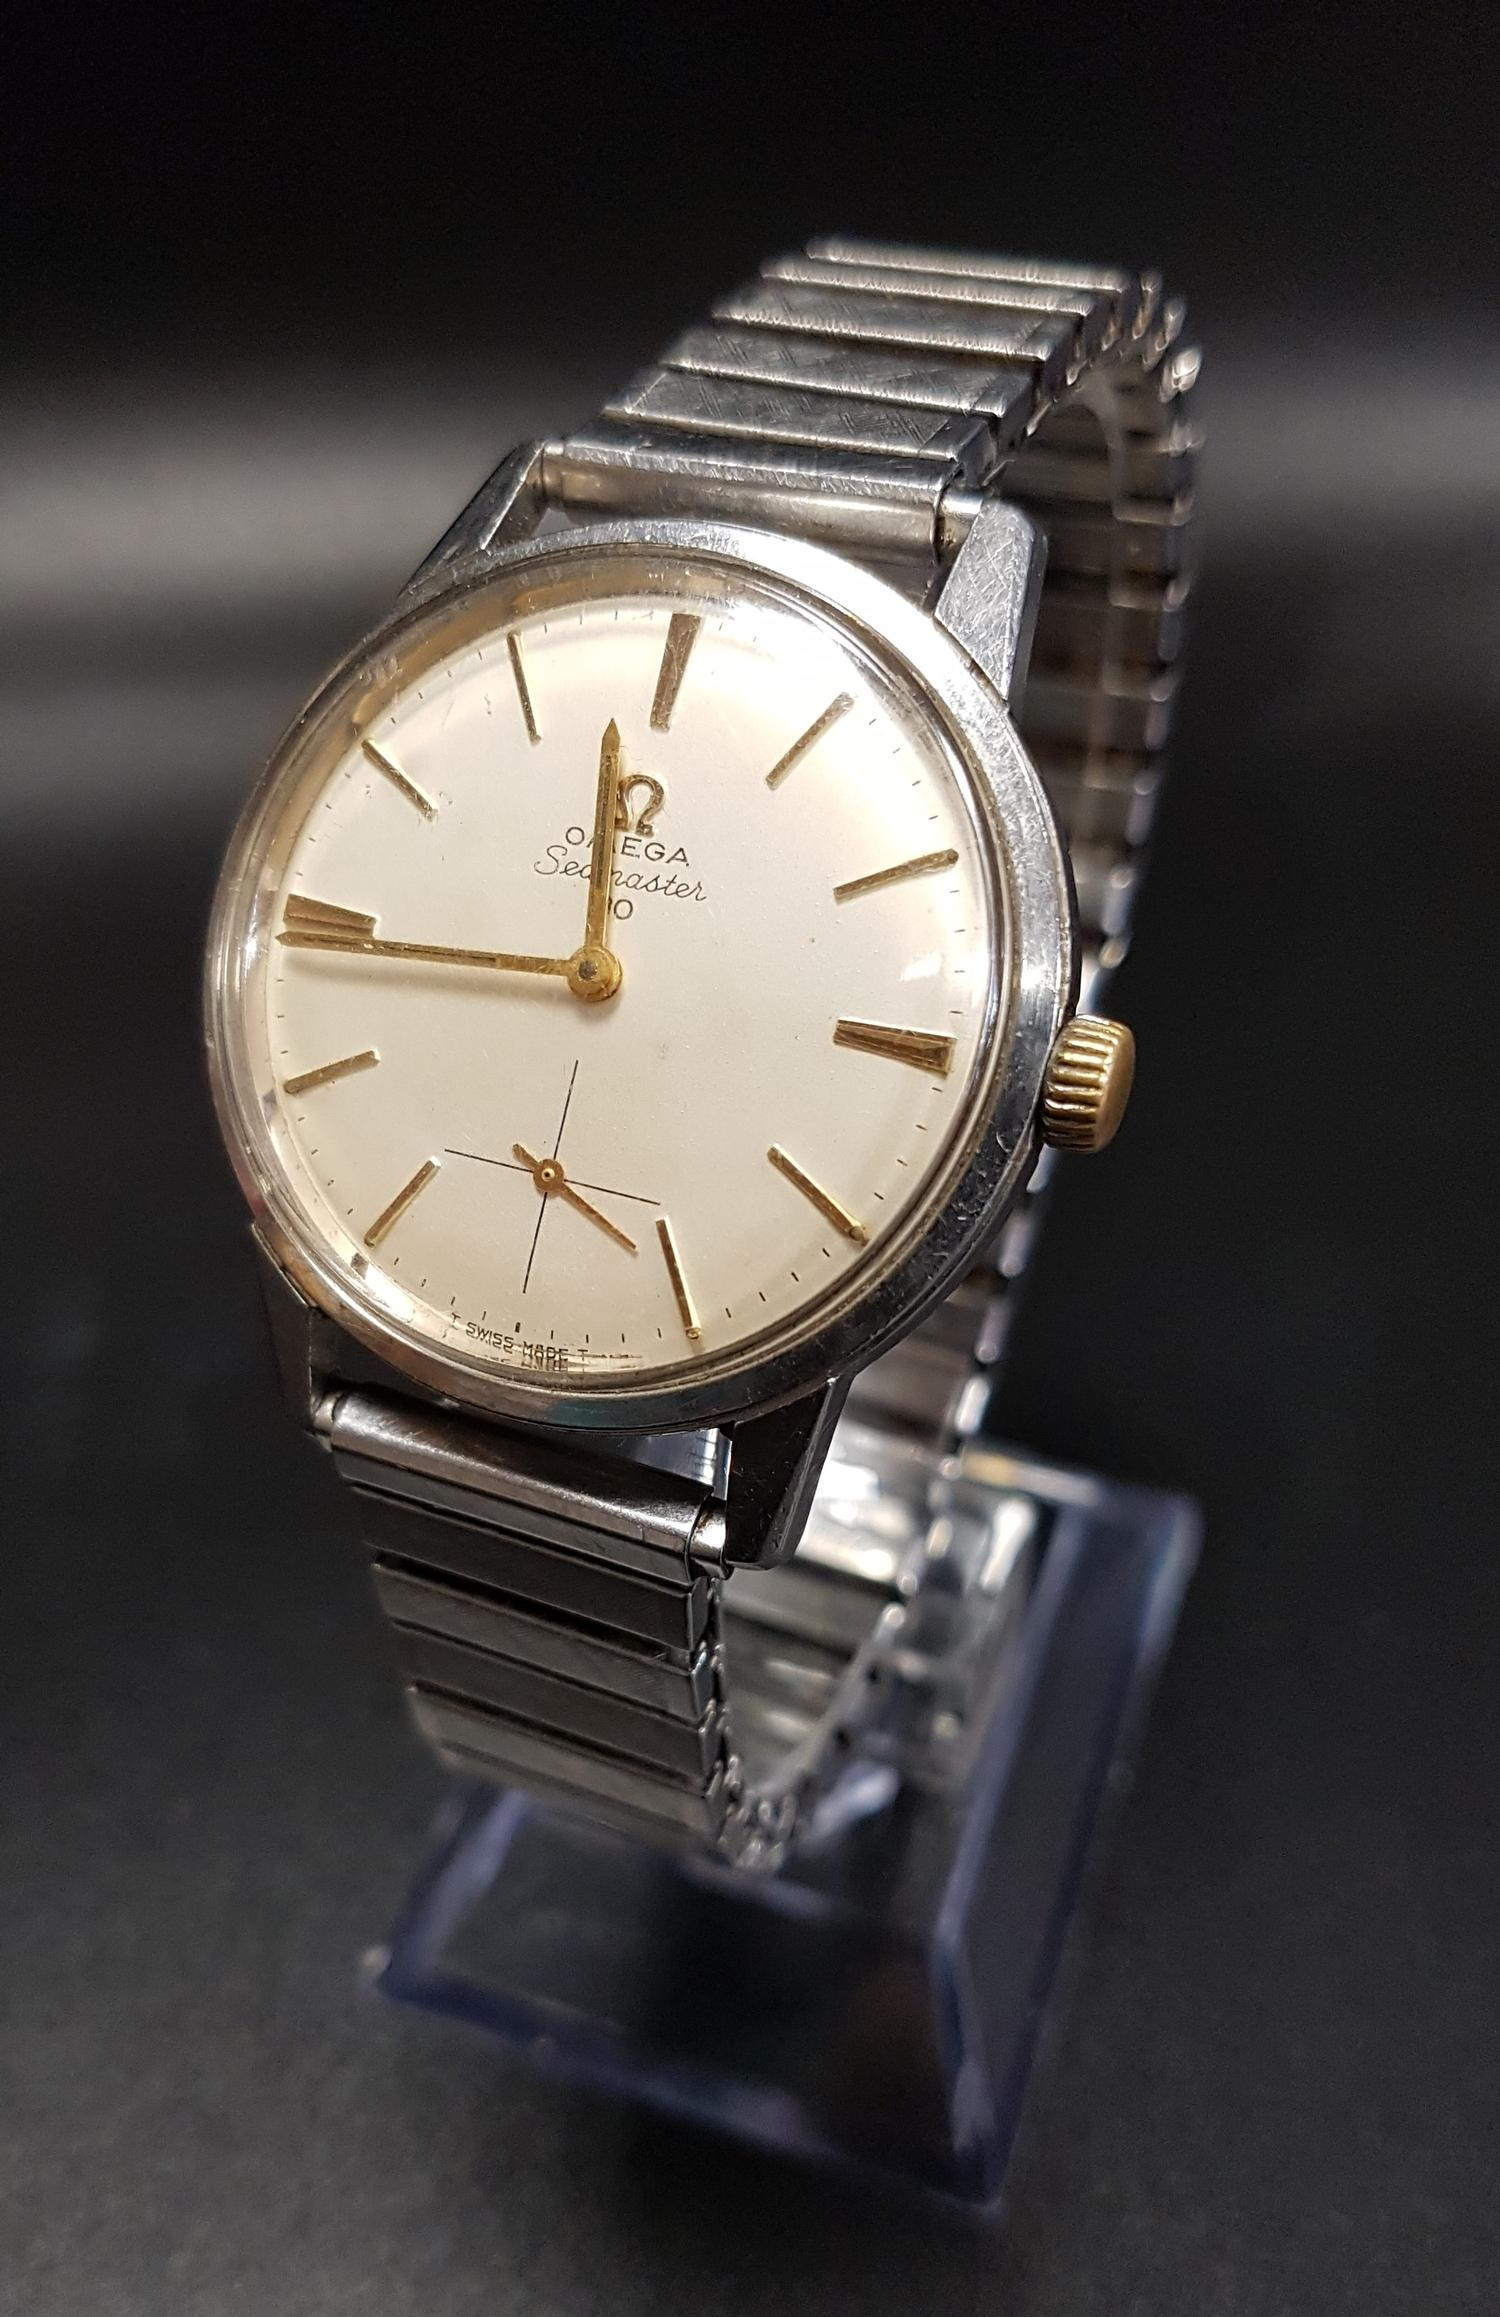 Lot 26 - GENTLEMEN'S OMEGA SEAMASTER 30 WRISTWATCH the champagne dial with baton five minute markers and